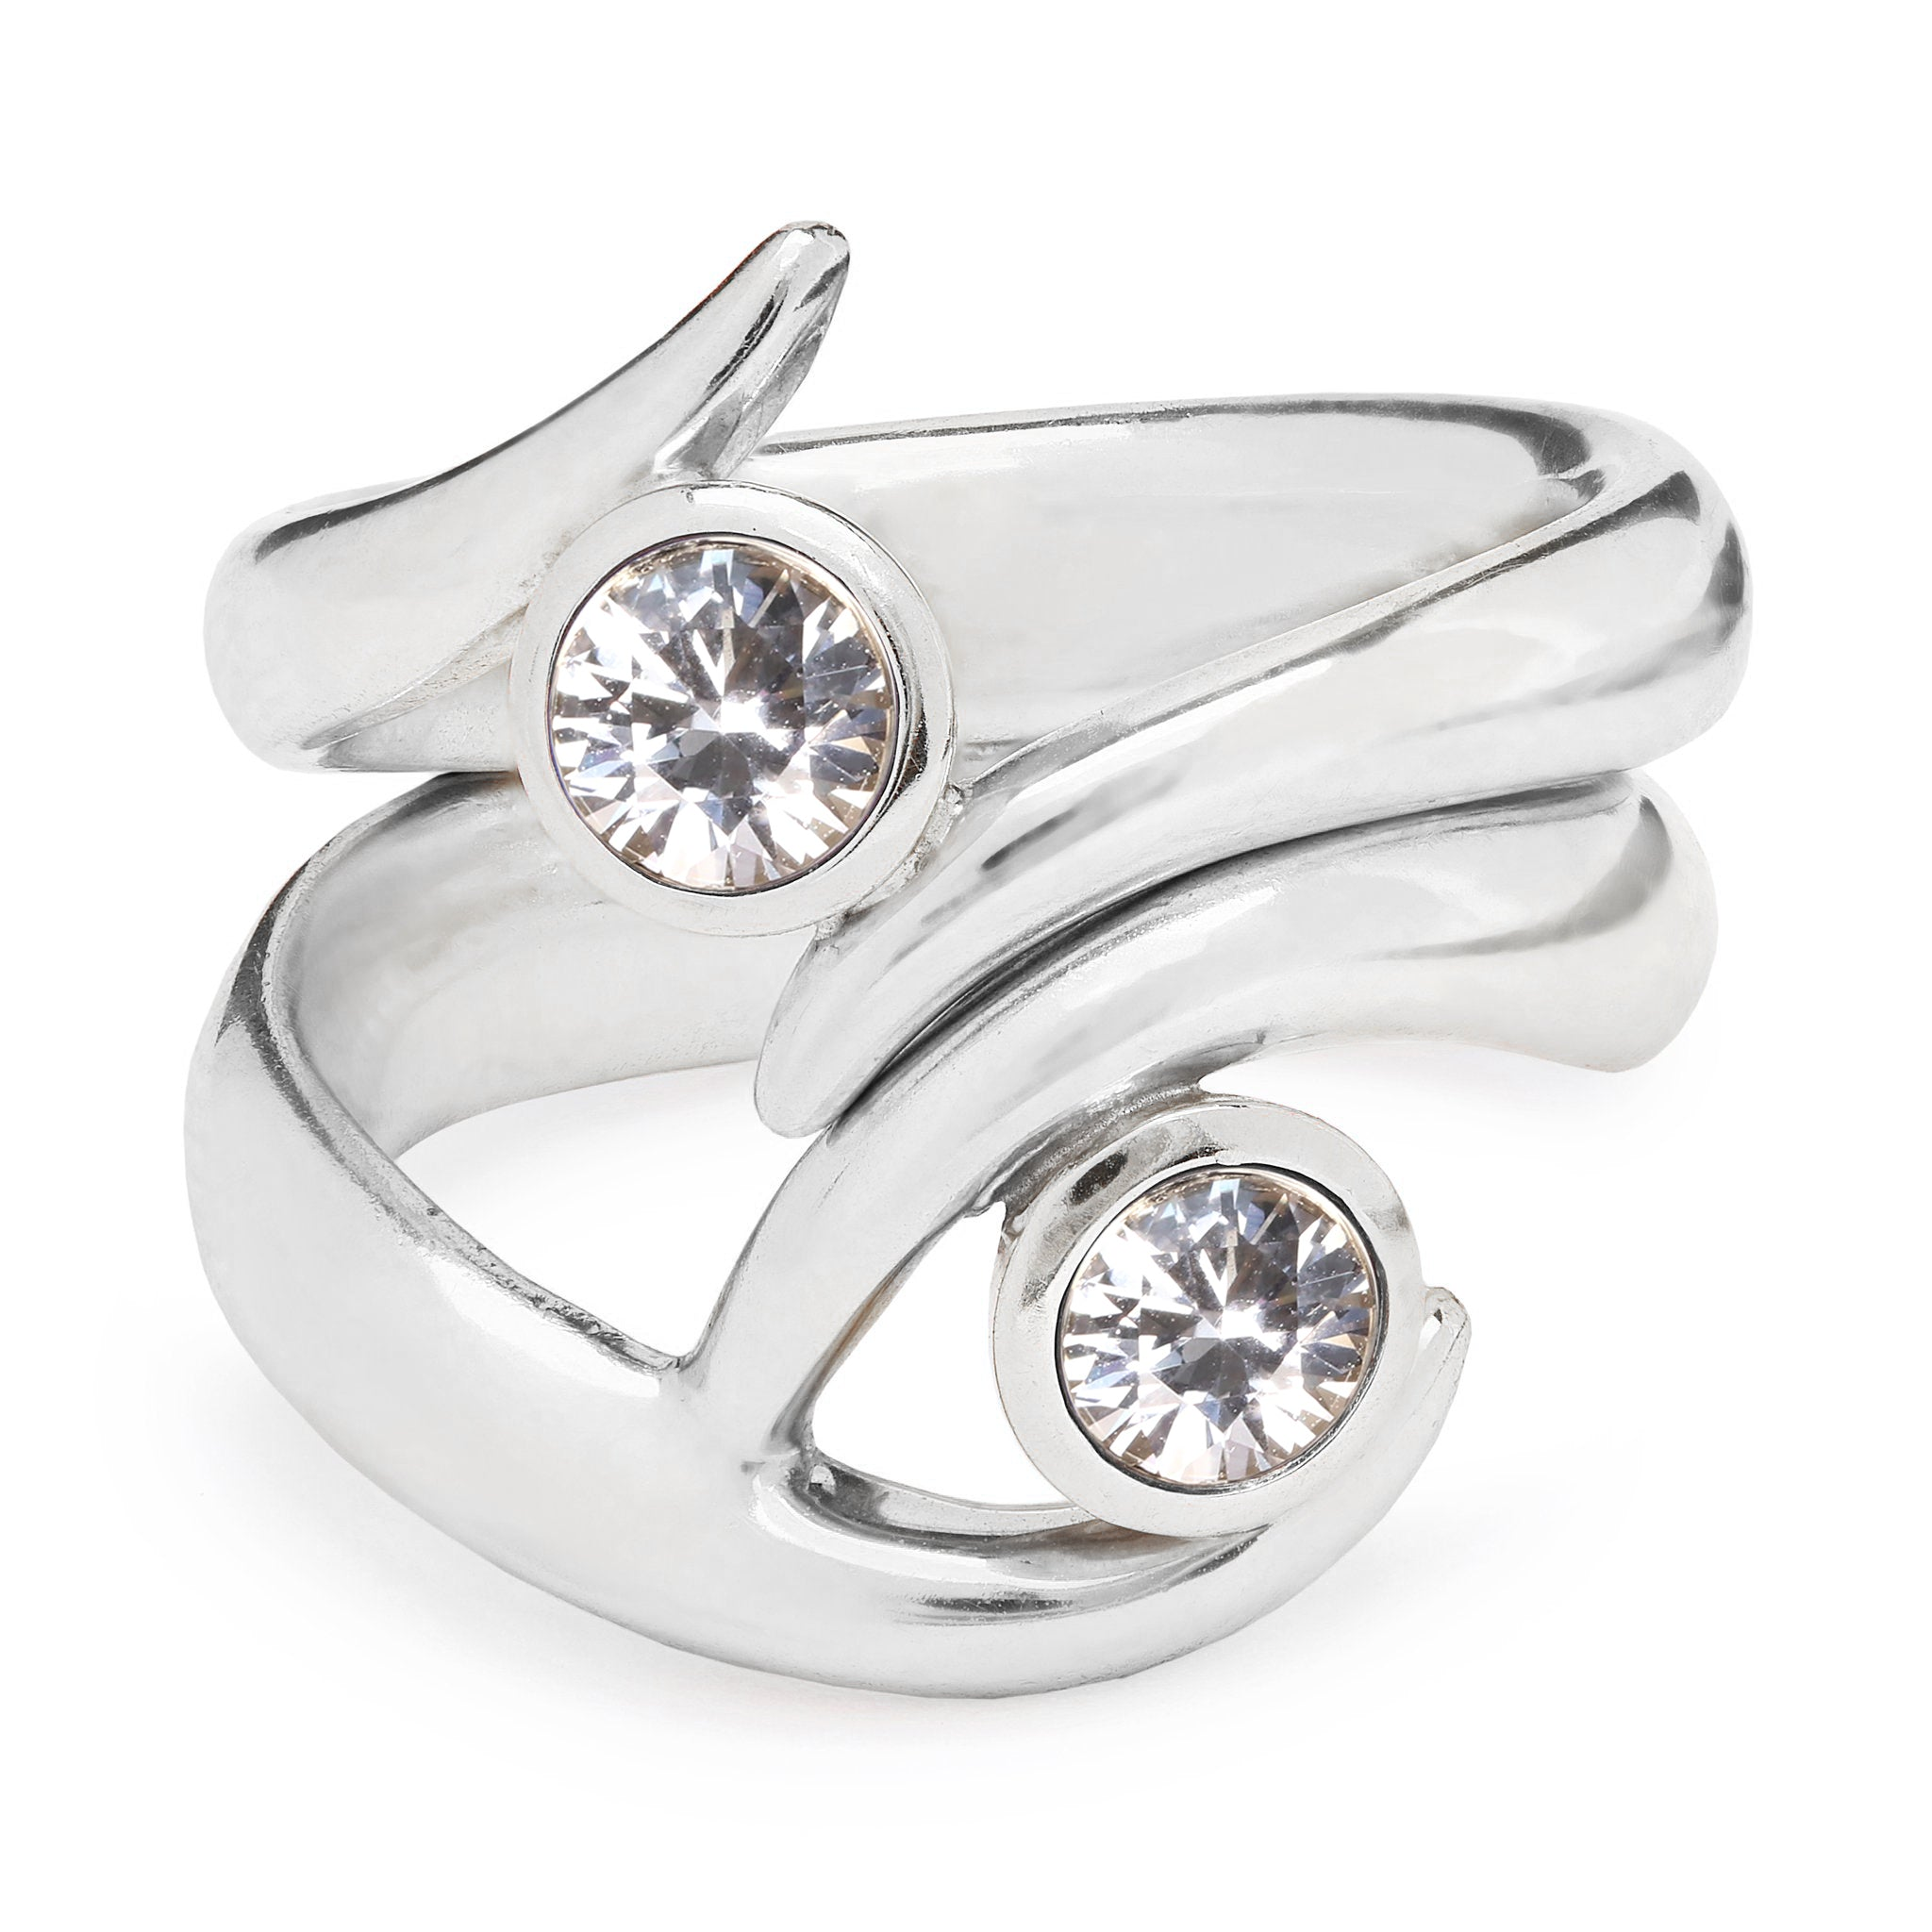 Mozambique Ring - White Gold and White Sapphire